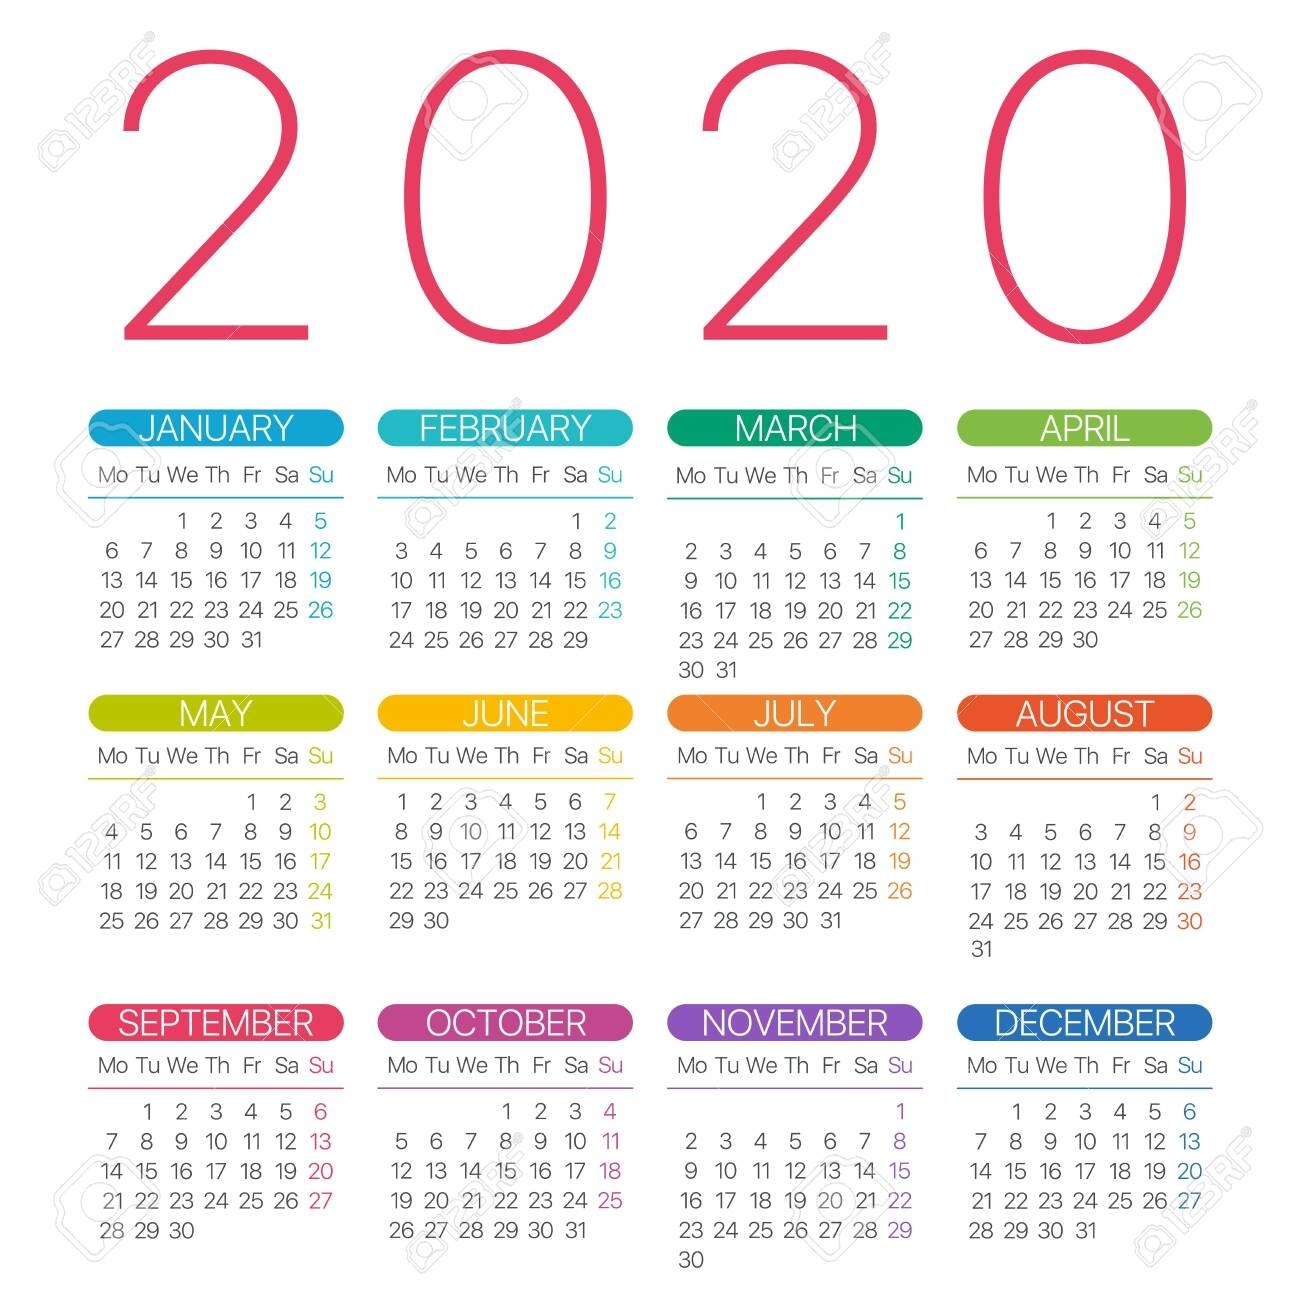 2020 Calendar Thin Line - Monday To Sunday - Vector Template within Calendar 2020 Monday - Sunday